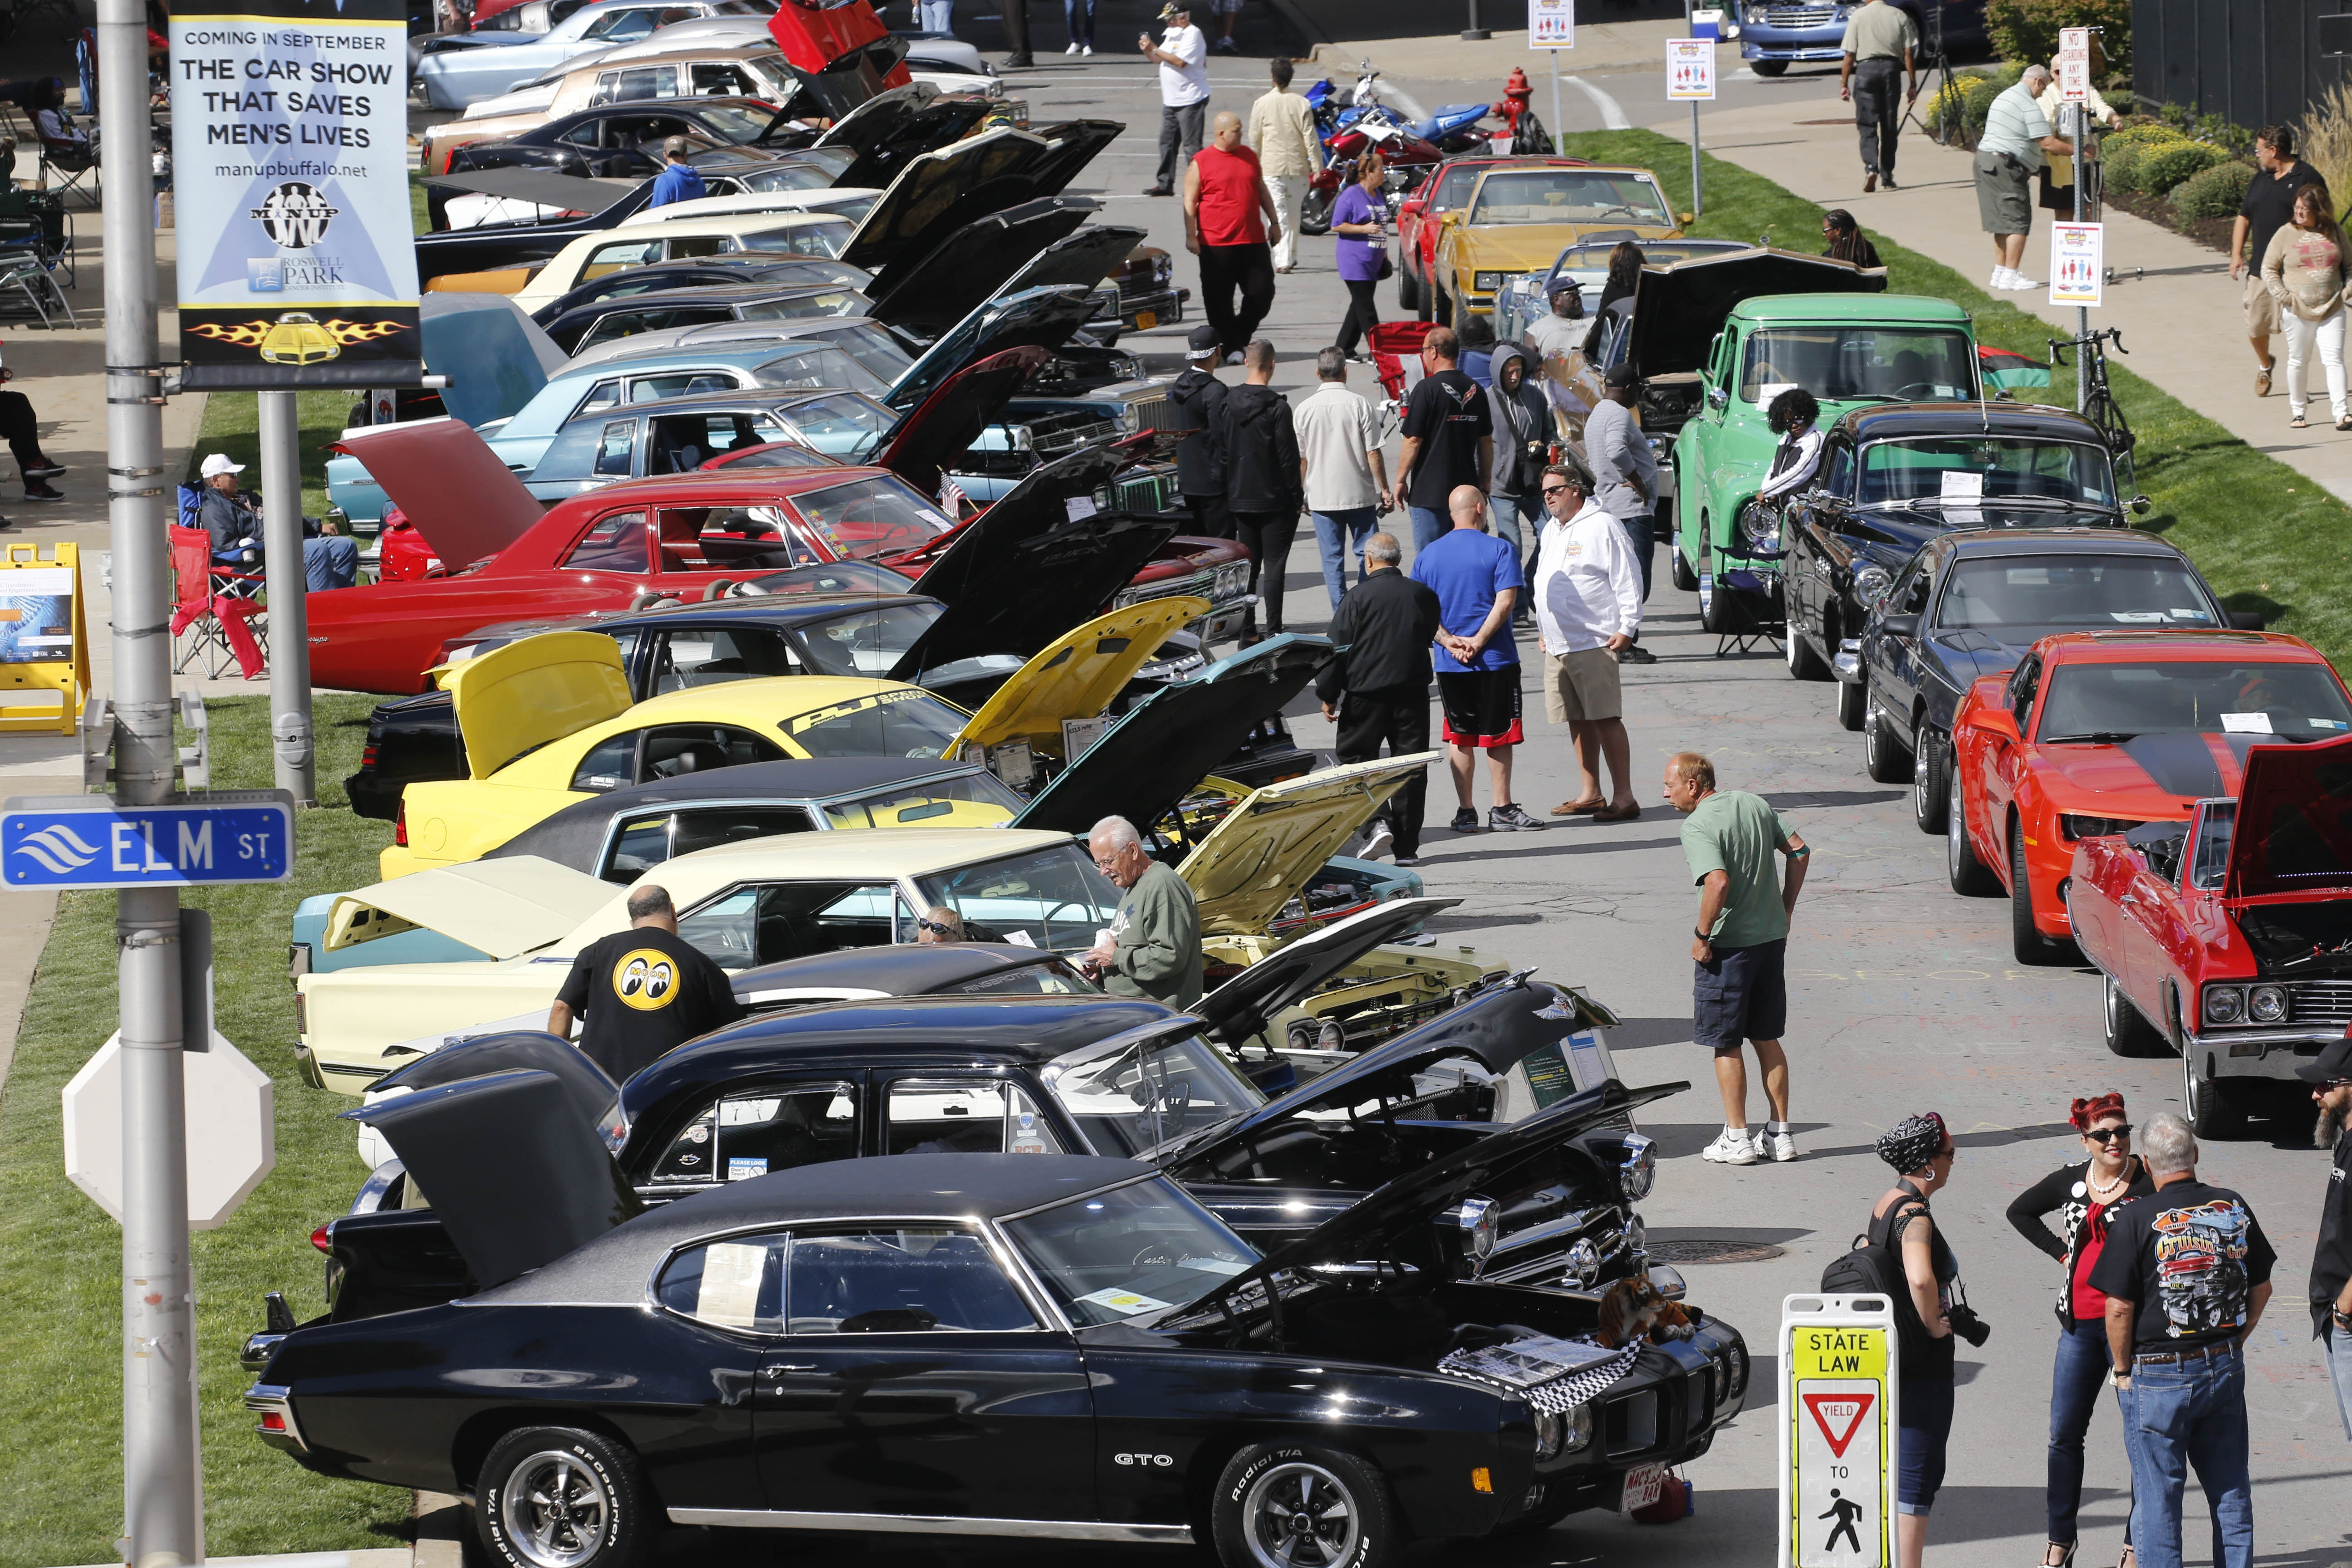 Classic cars line Carlton Street for the Cruisin' for a Cure classic car show and prostate cancer education and screening event on Saturday. The show reignited the national debate over whether screening men for prostate cancer was worth the risks involved.